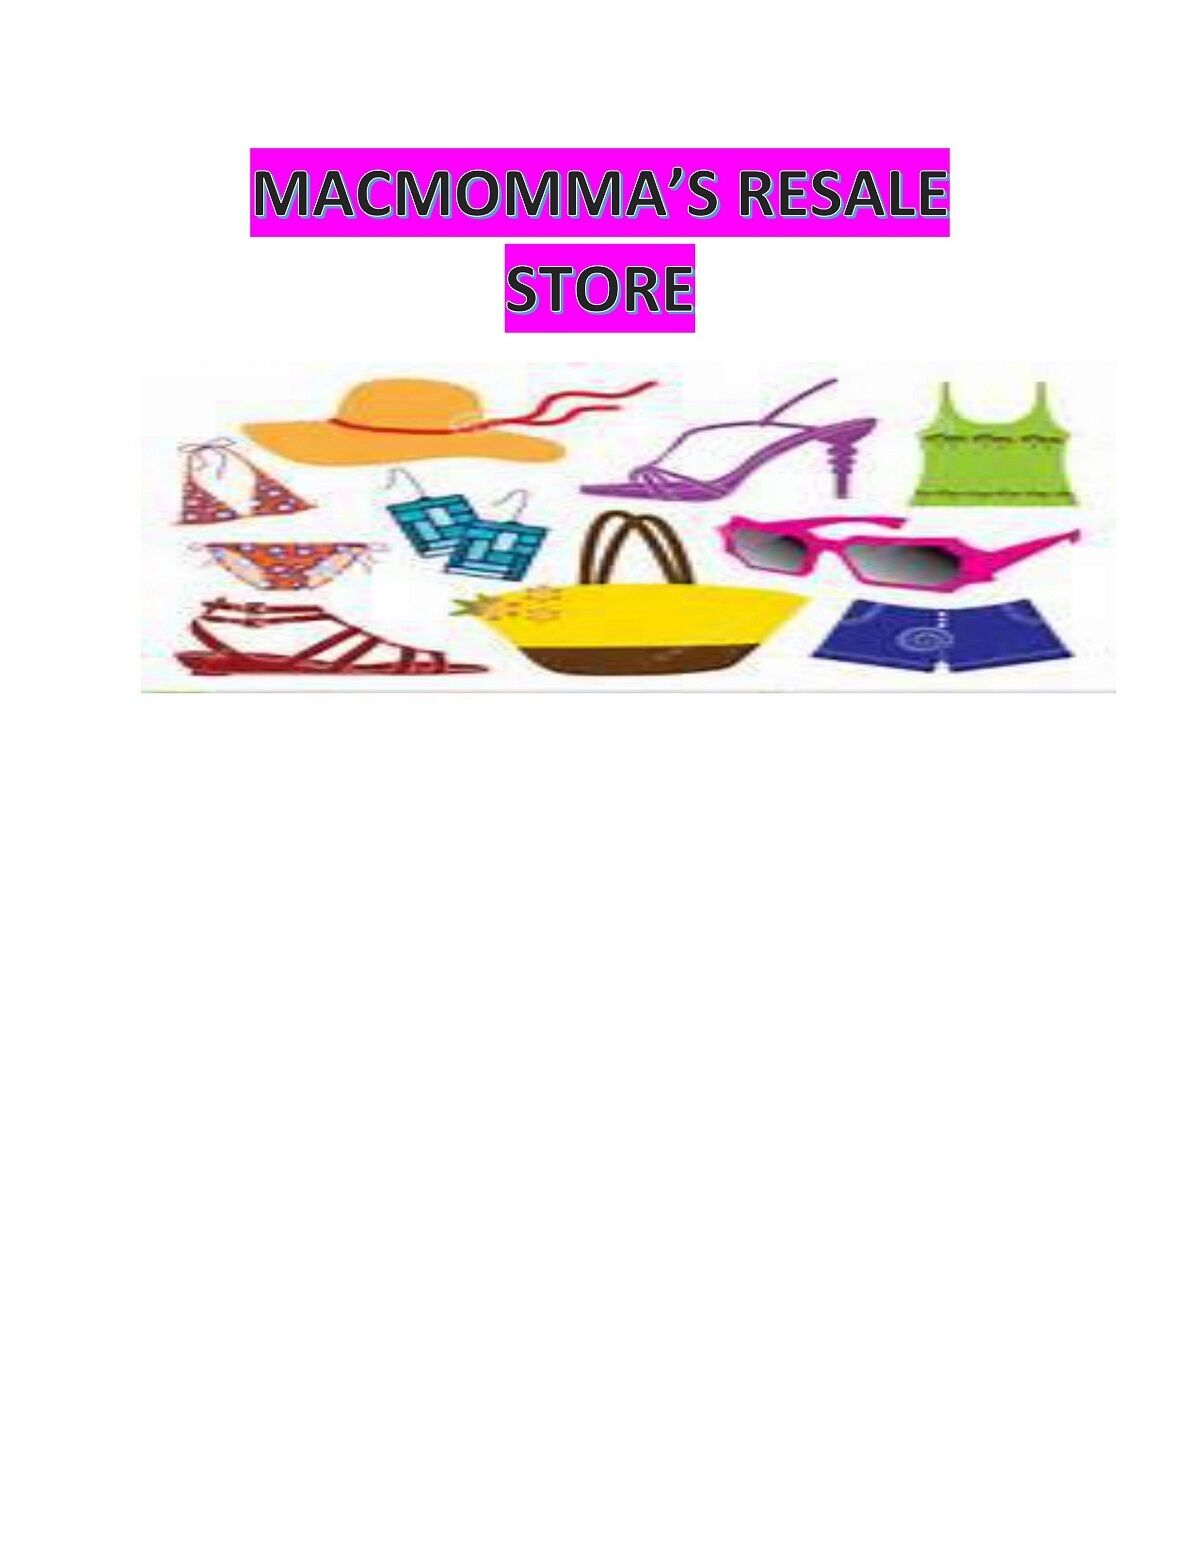 MACMOMMA'S RESALE STORE